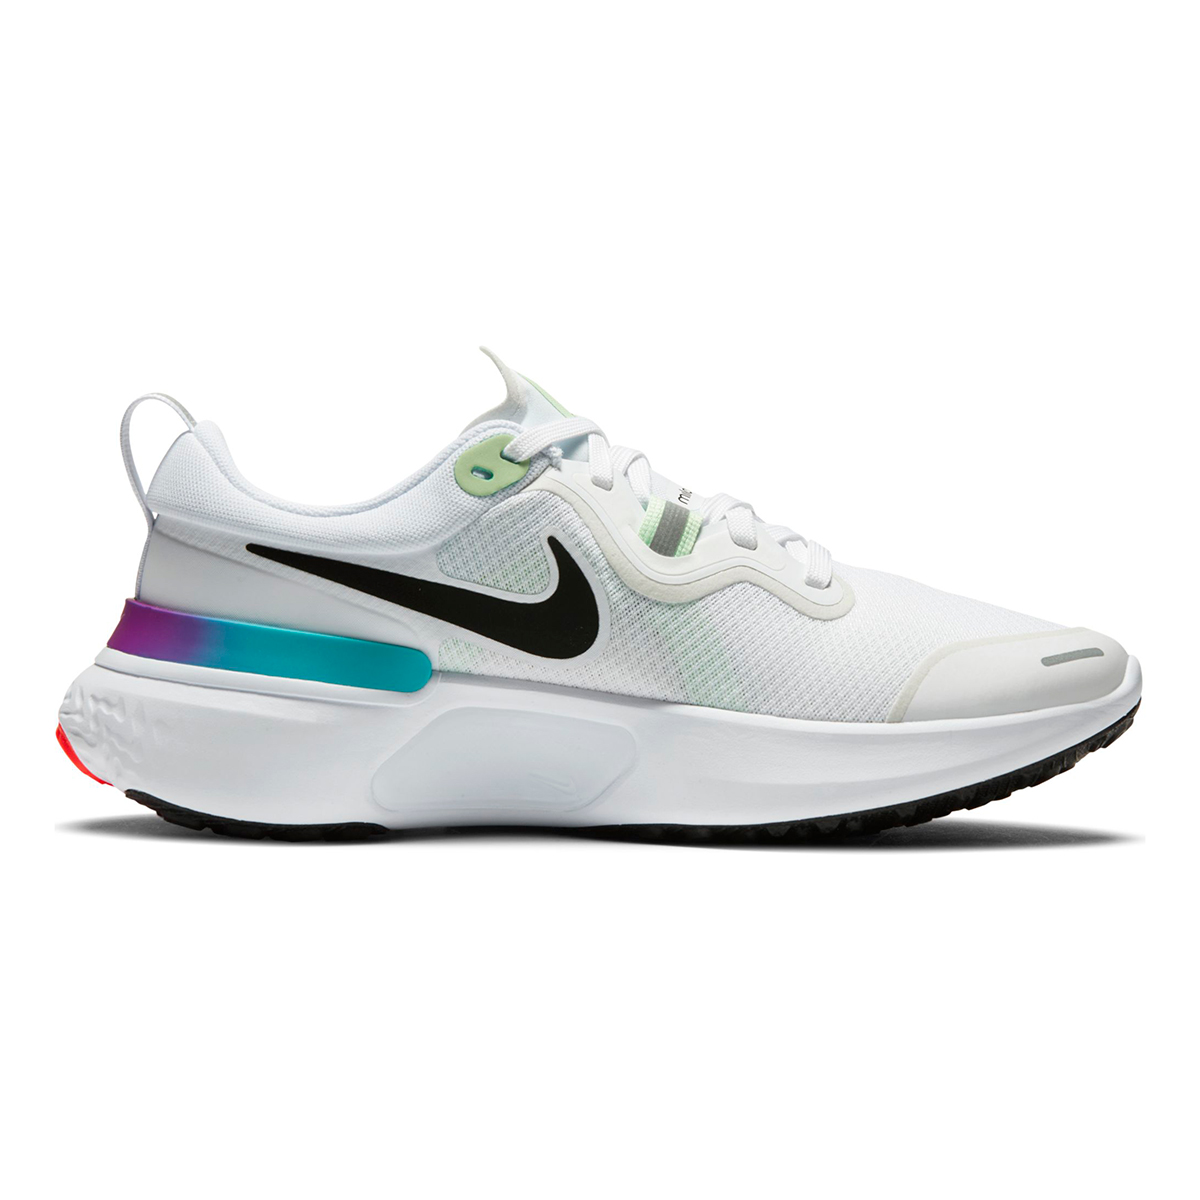 Women's Nike React Miler Running Shoe - Color: White/Vapor Green/Hyper Jade/Black - Size: 5 - Width: Regular, White/Vapor Green/Hyper Jade/Black, large, image 1